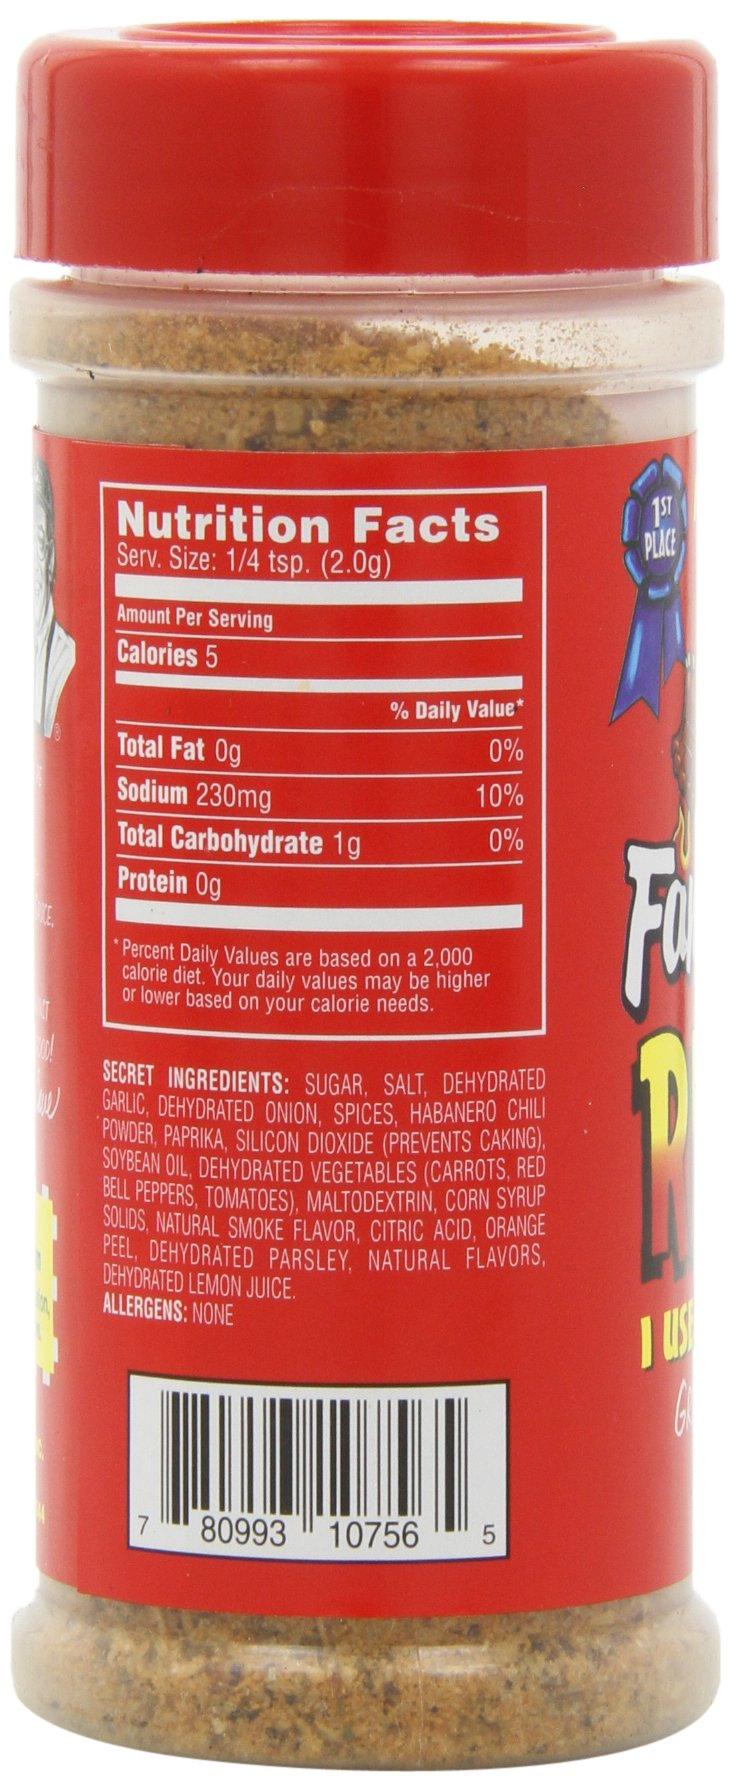 Famous Dave's Seasoning Rib Rub, 5.5-Ounce (Pack of 6) by Famous Dave's (Image #9)